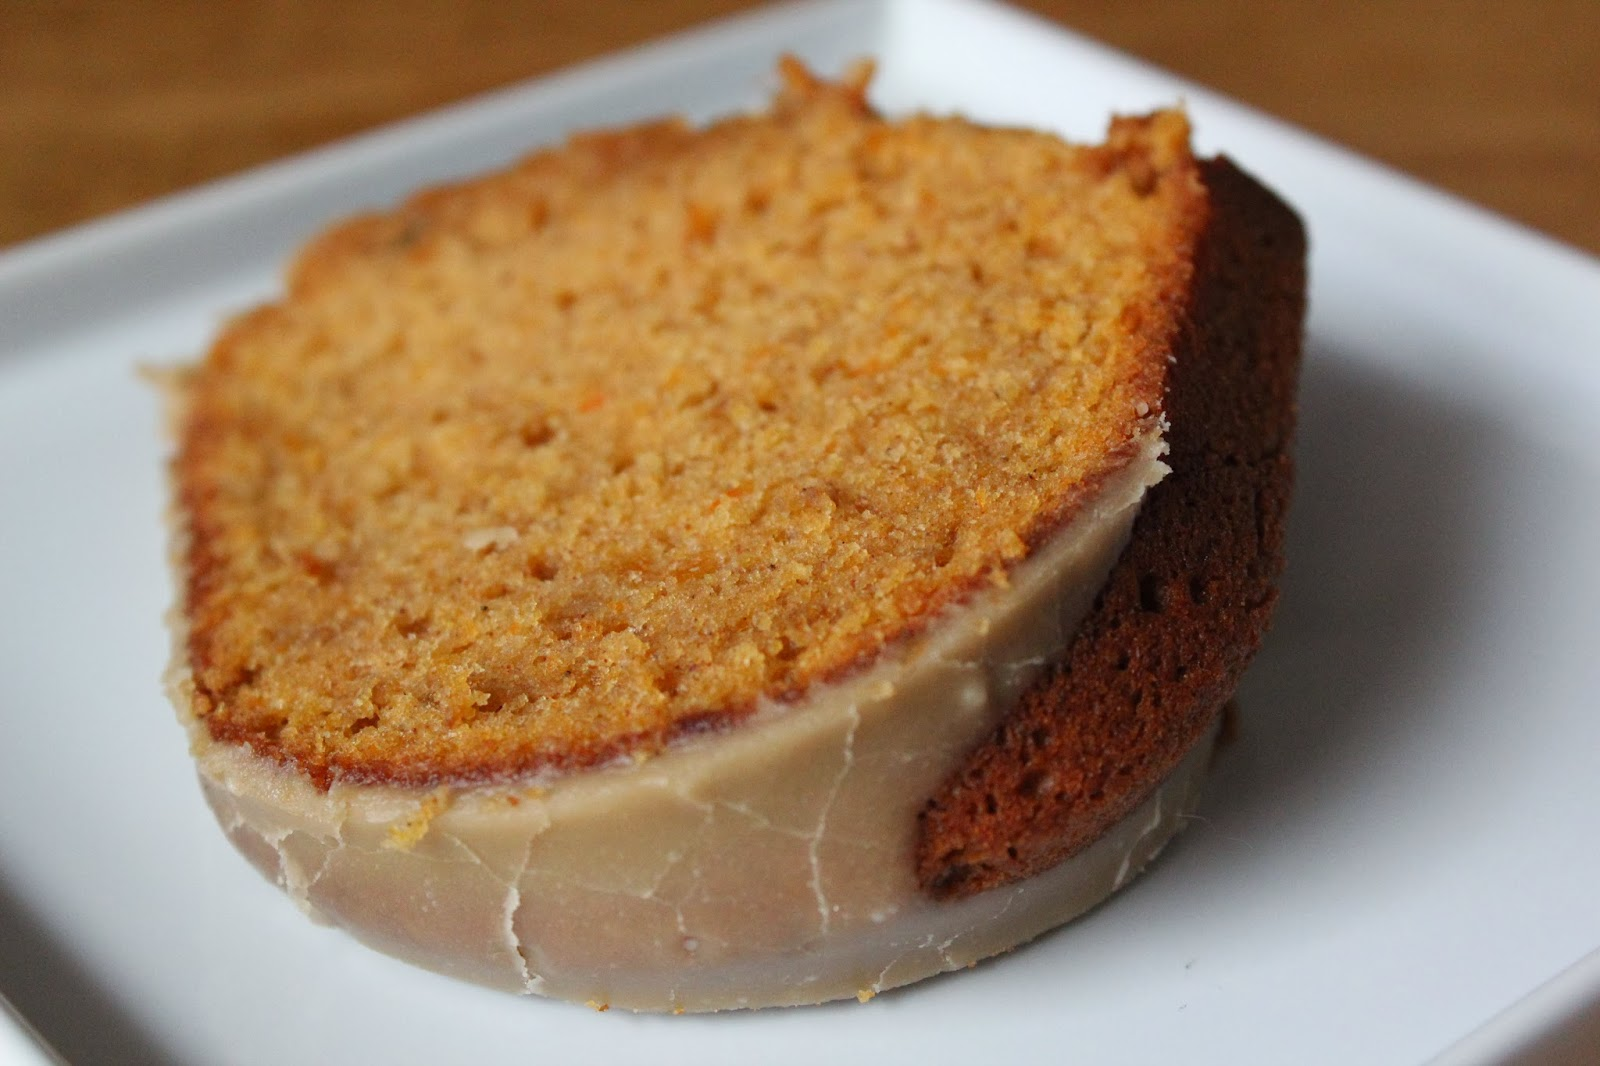 Spiced Sweet Potato Cake with Brown Sugar Icing